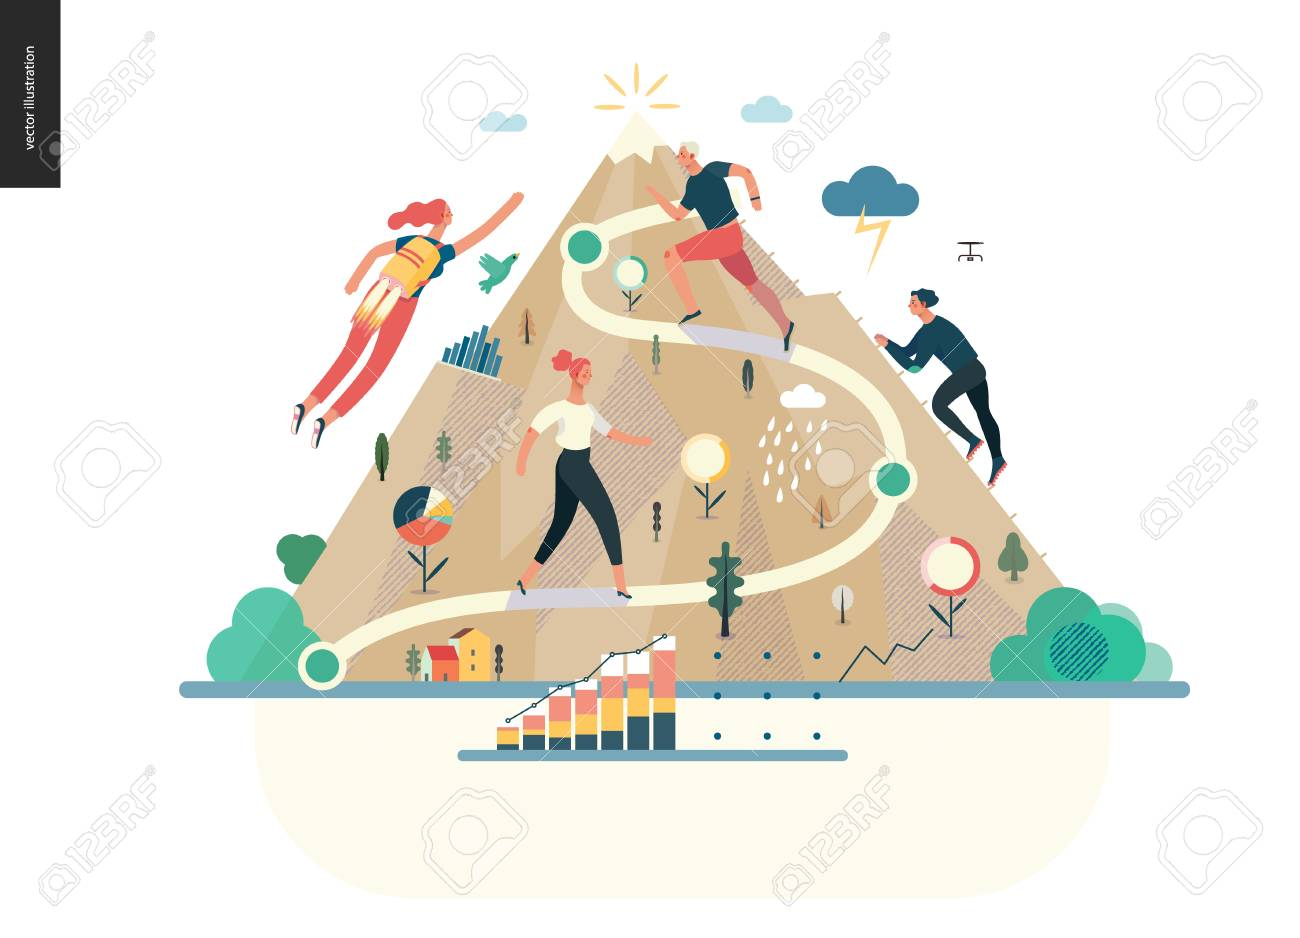 Business series, color 1- career -modern flat vector illustration concept of career - people climbing the mountain. Climbing up the career ladder process metaphor Creative landing page design template - 110269926